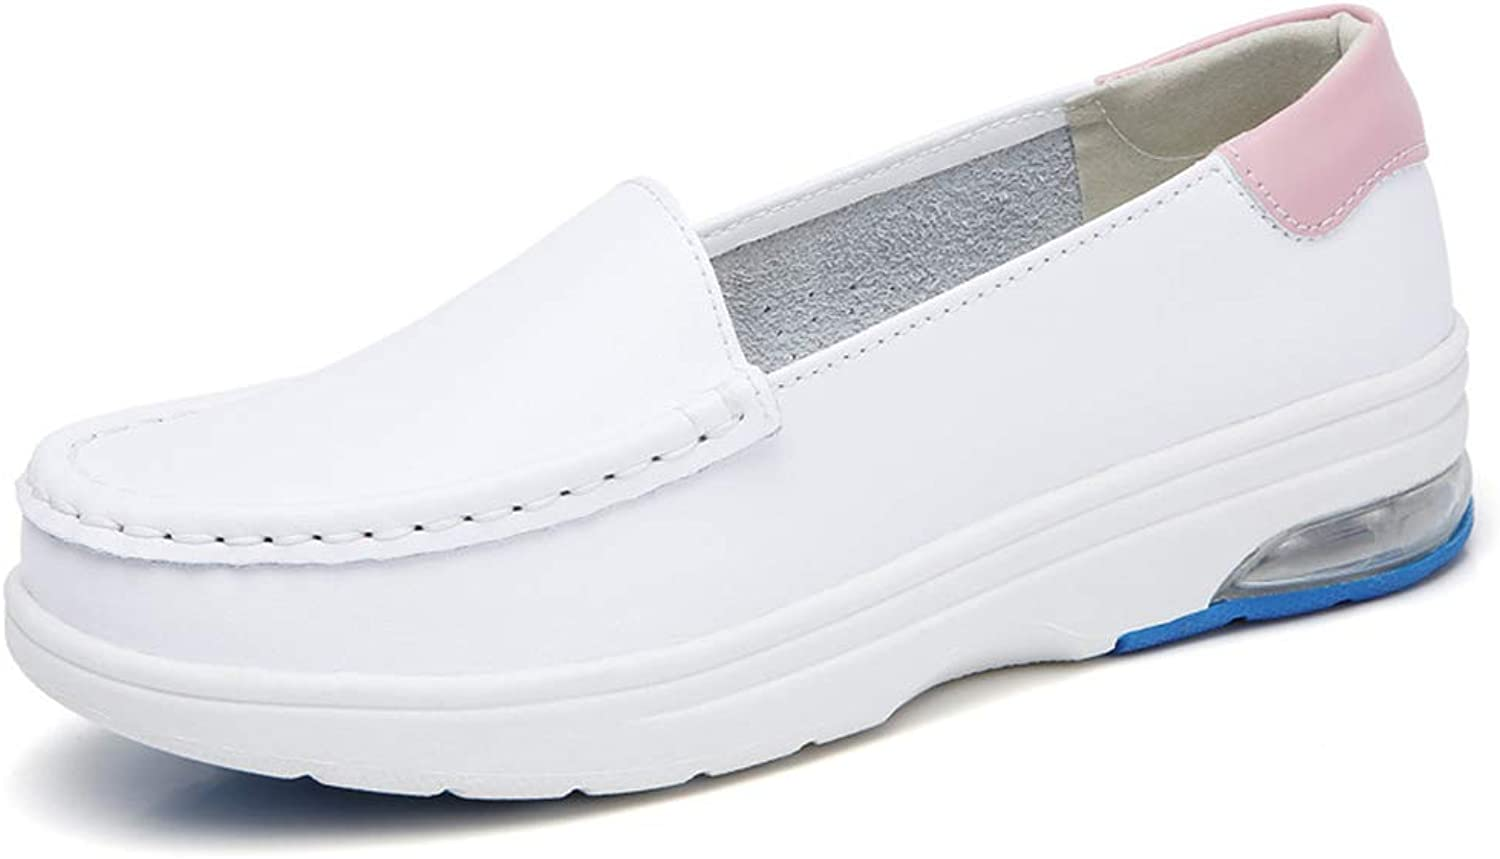 Sunny Day Women's Classic Flats Memory Foam Cushioned Soft Daily Slip-on Casual Sneaker Flat shoes